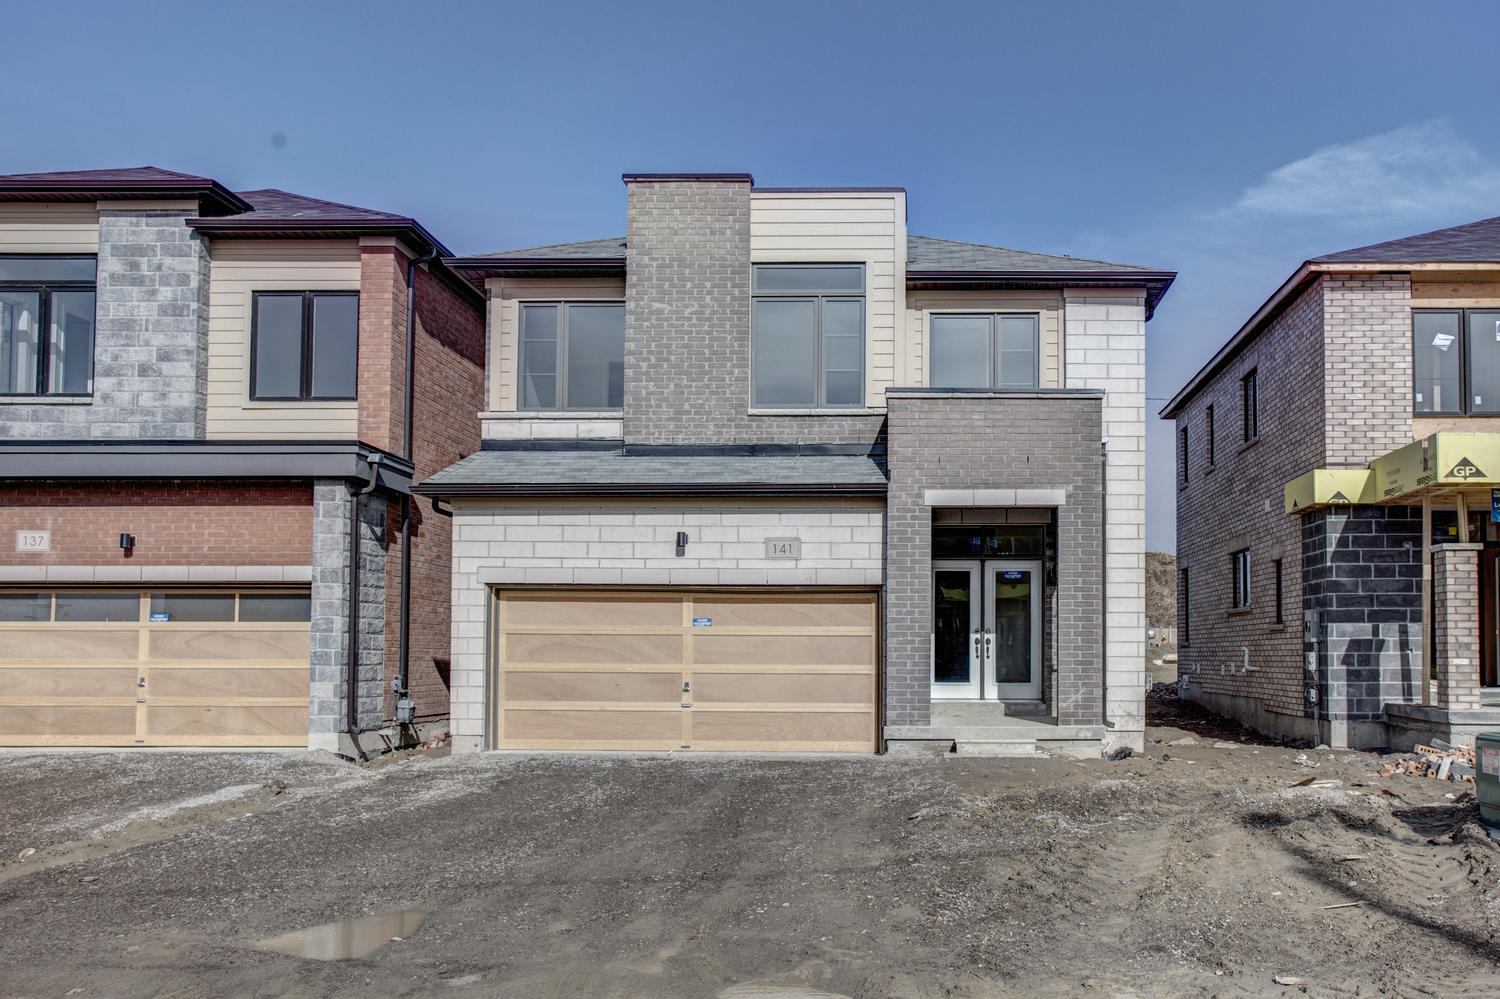 Main Photo: 141 Vantage Loop in Newmarket: Woodland Hill Freehold for sale